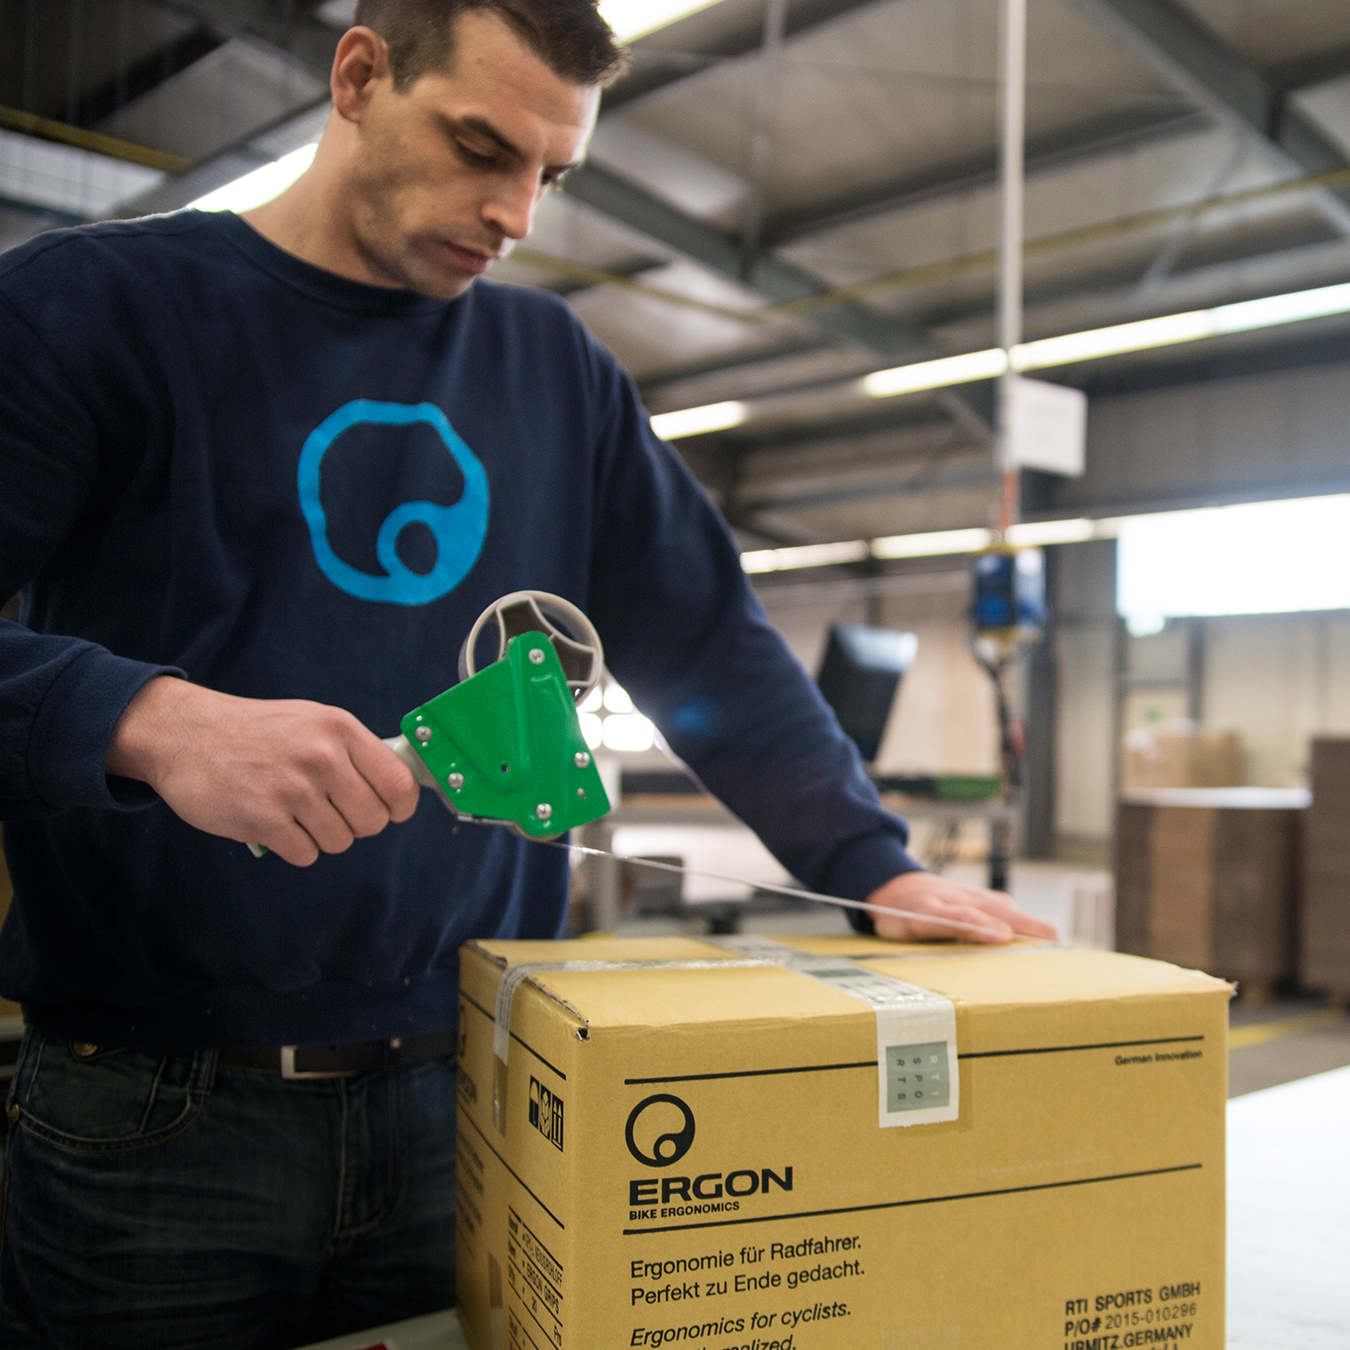 A package from Ergon getting prepared for shipping.